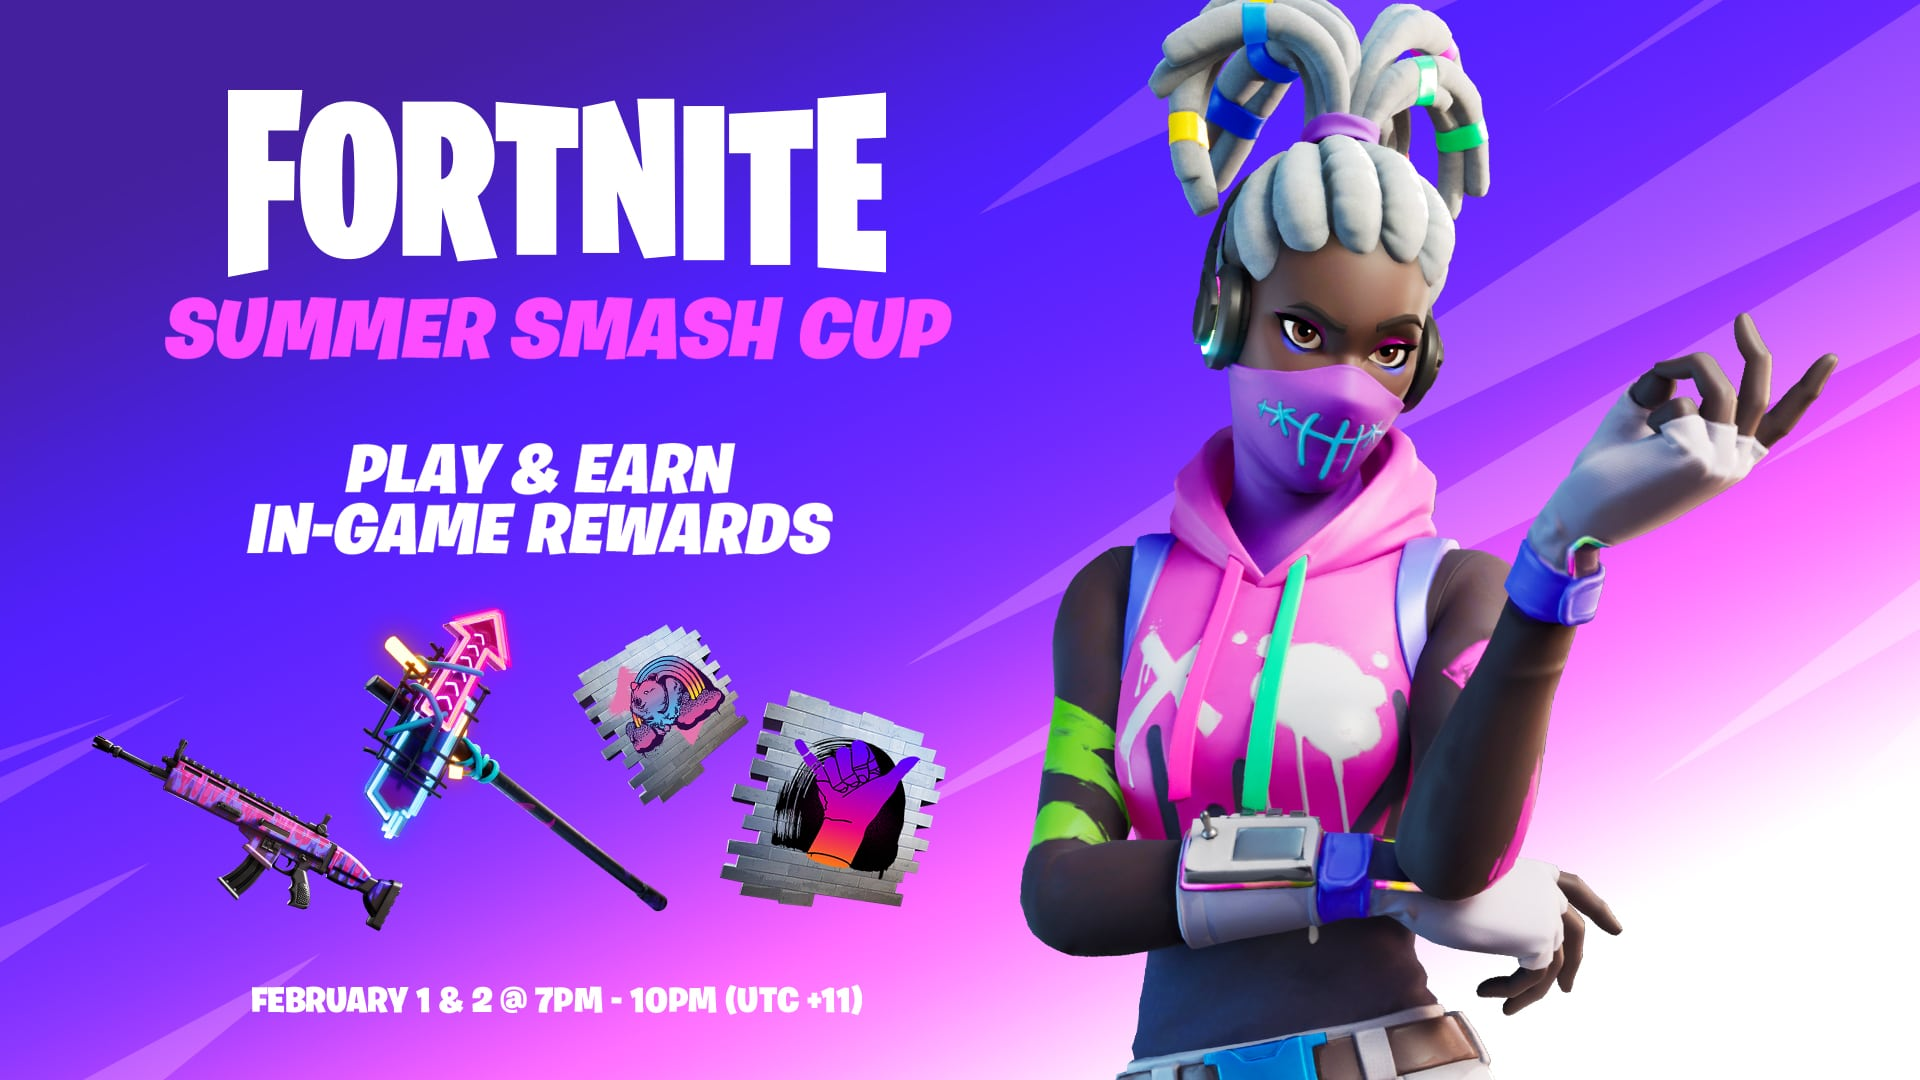 Fortnite Free Cosmetic Rewards for Summer Smash Cup